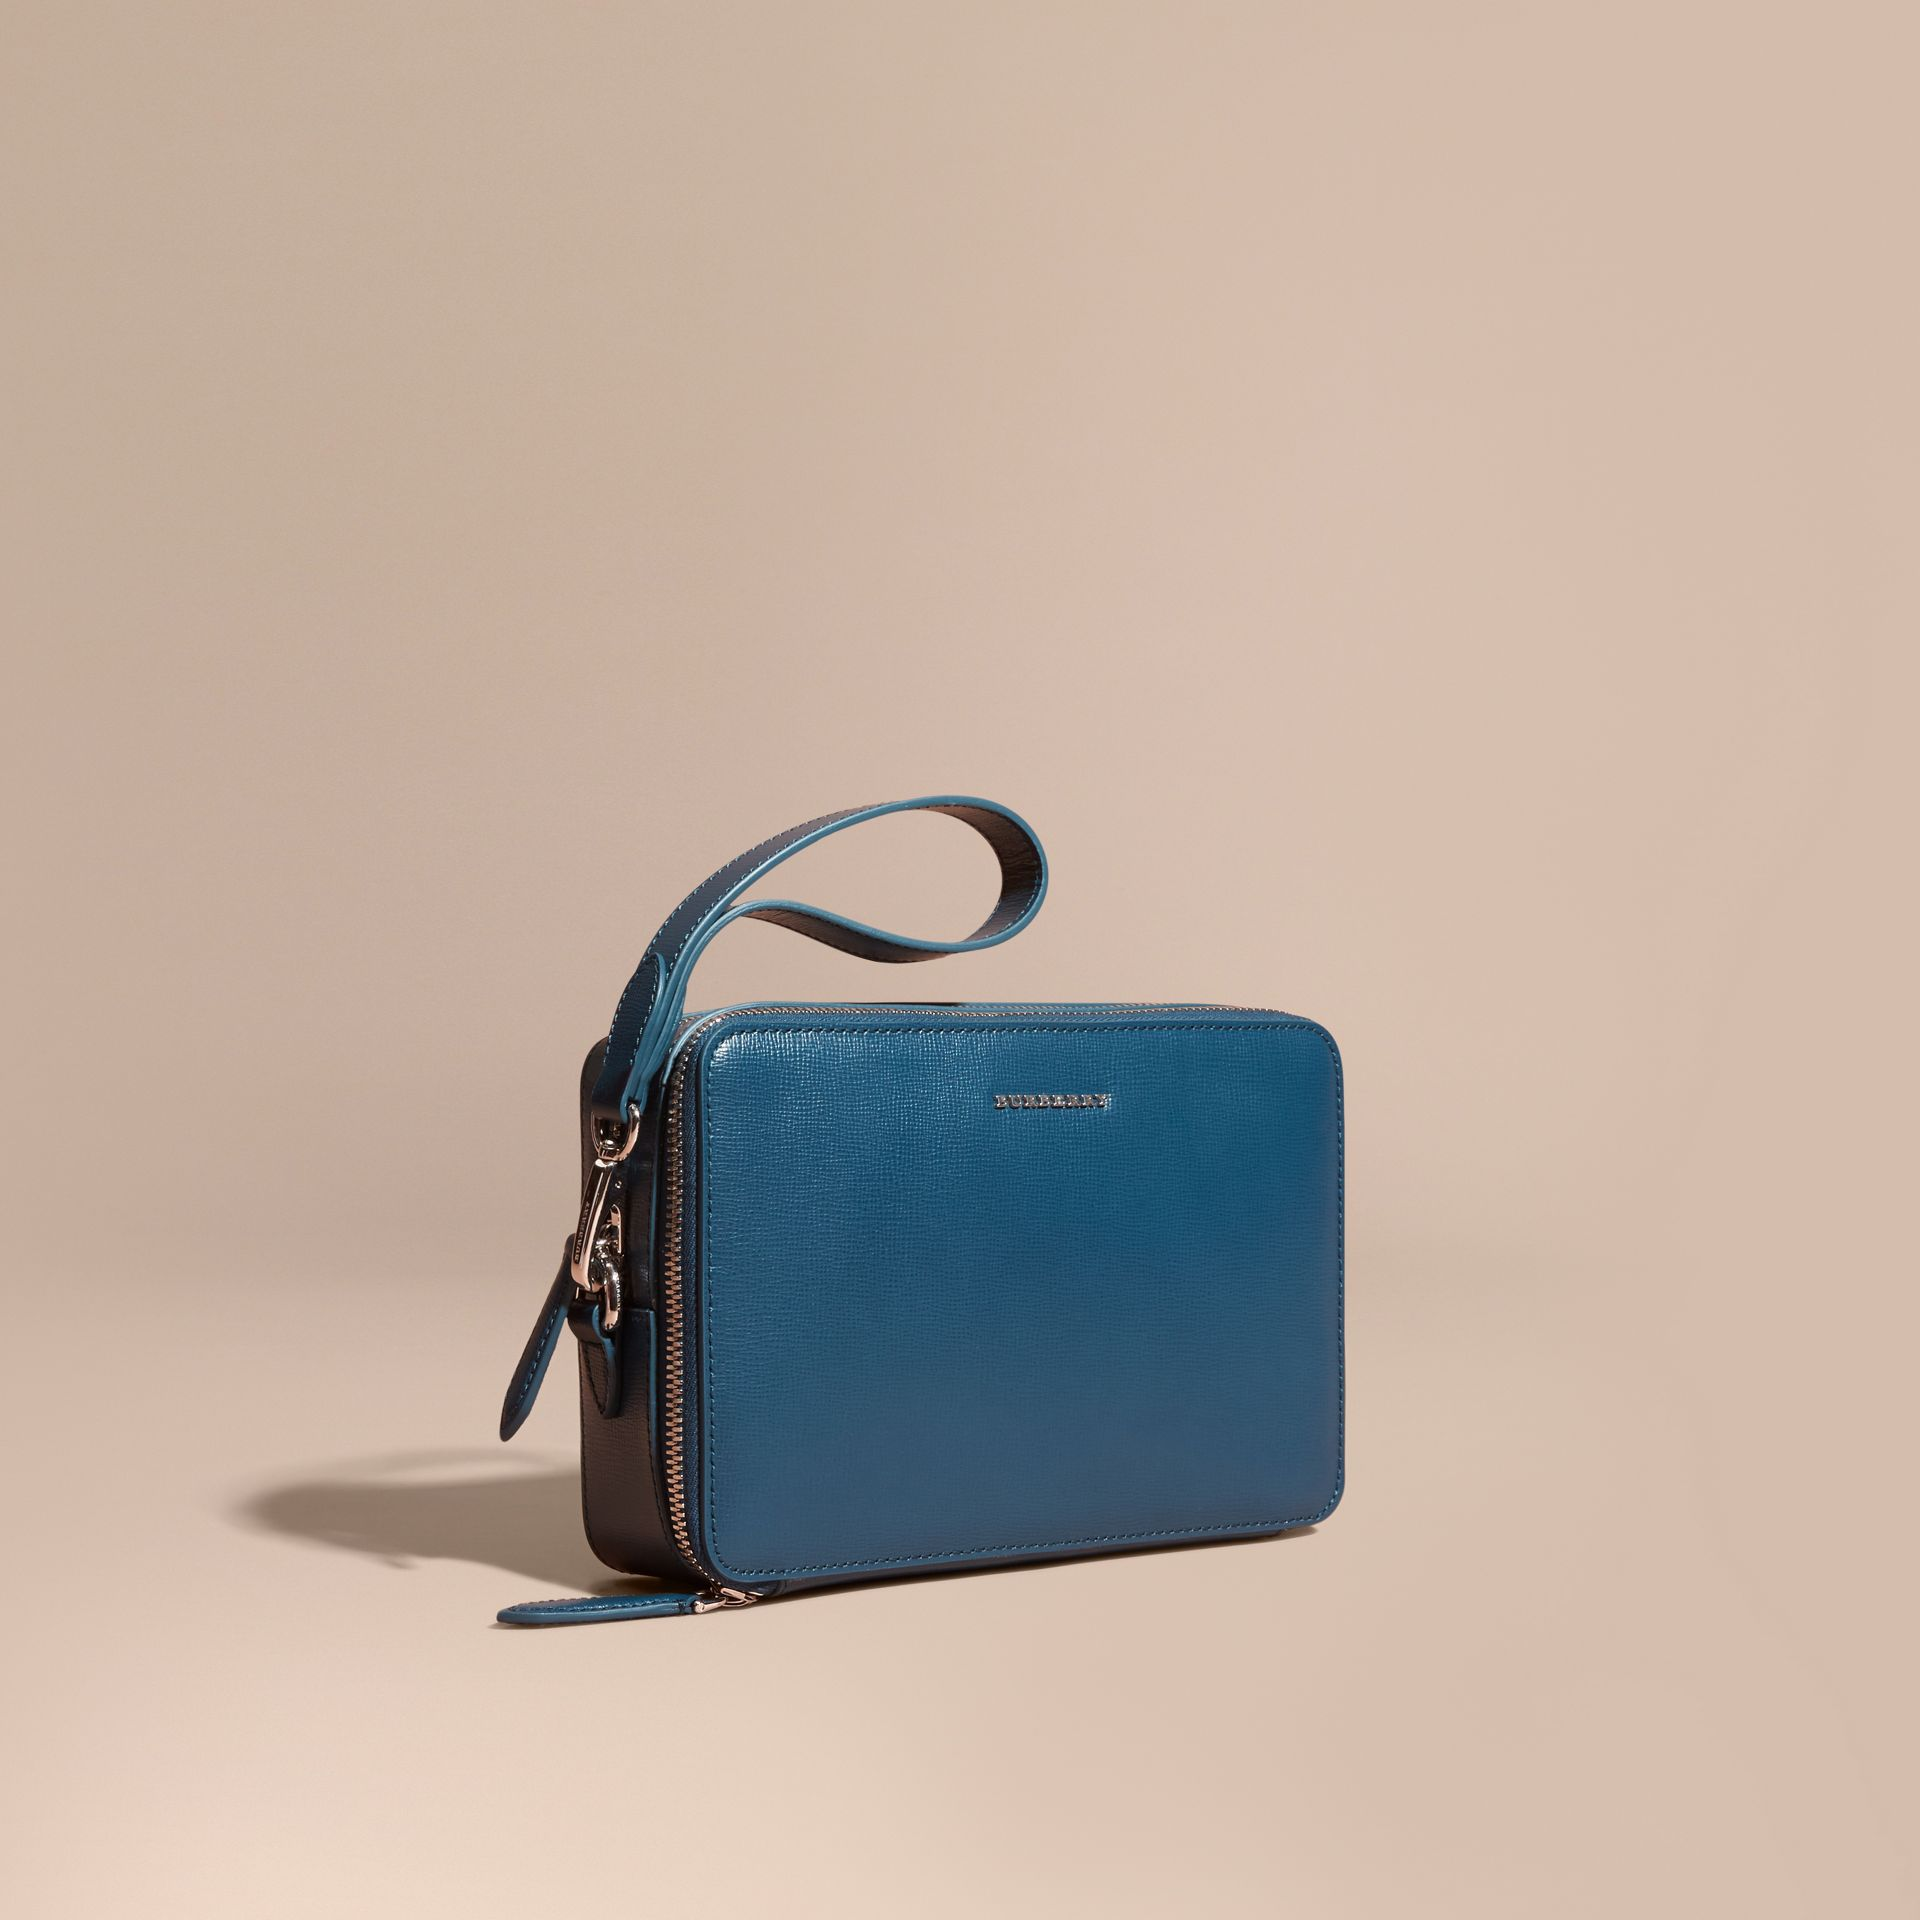 Mineral blue London Leather Pouch Mineral Blue - gallery image 1